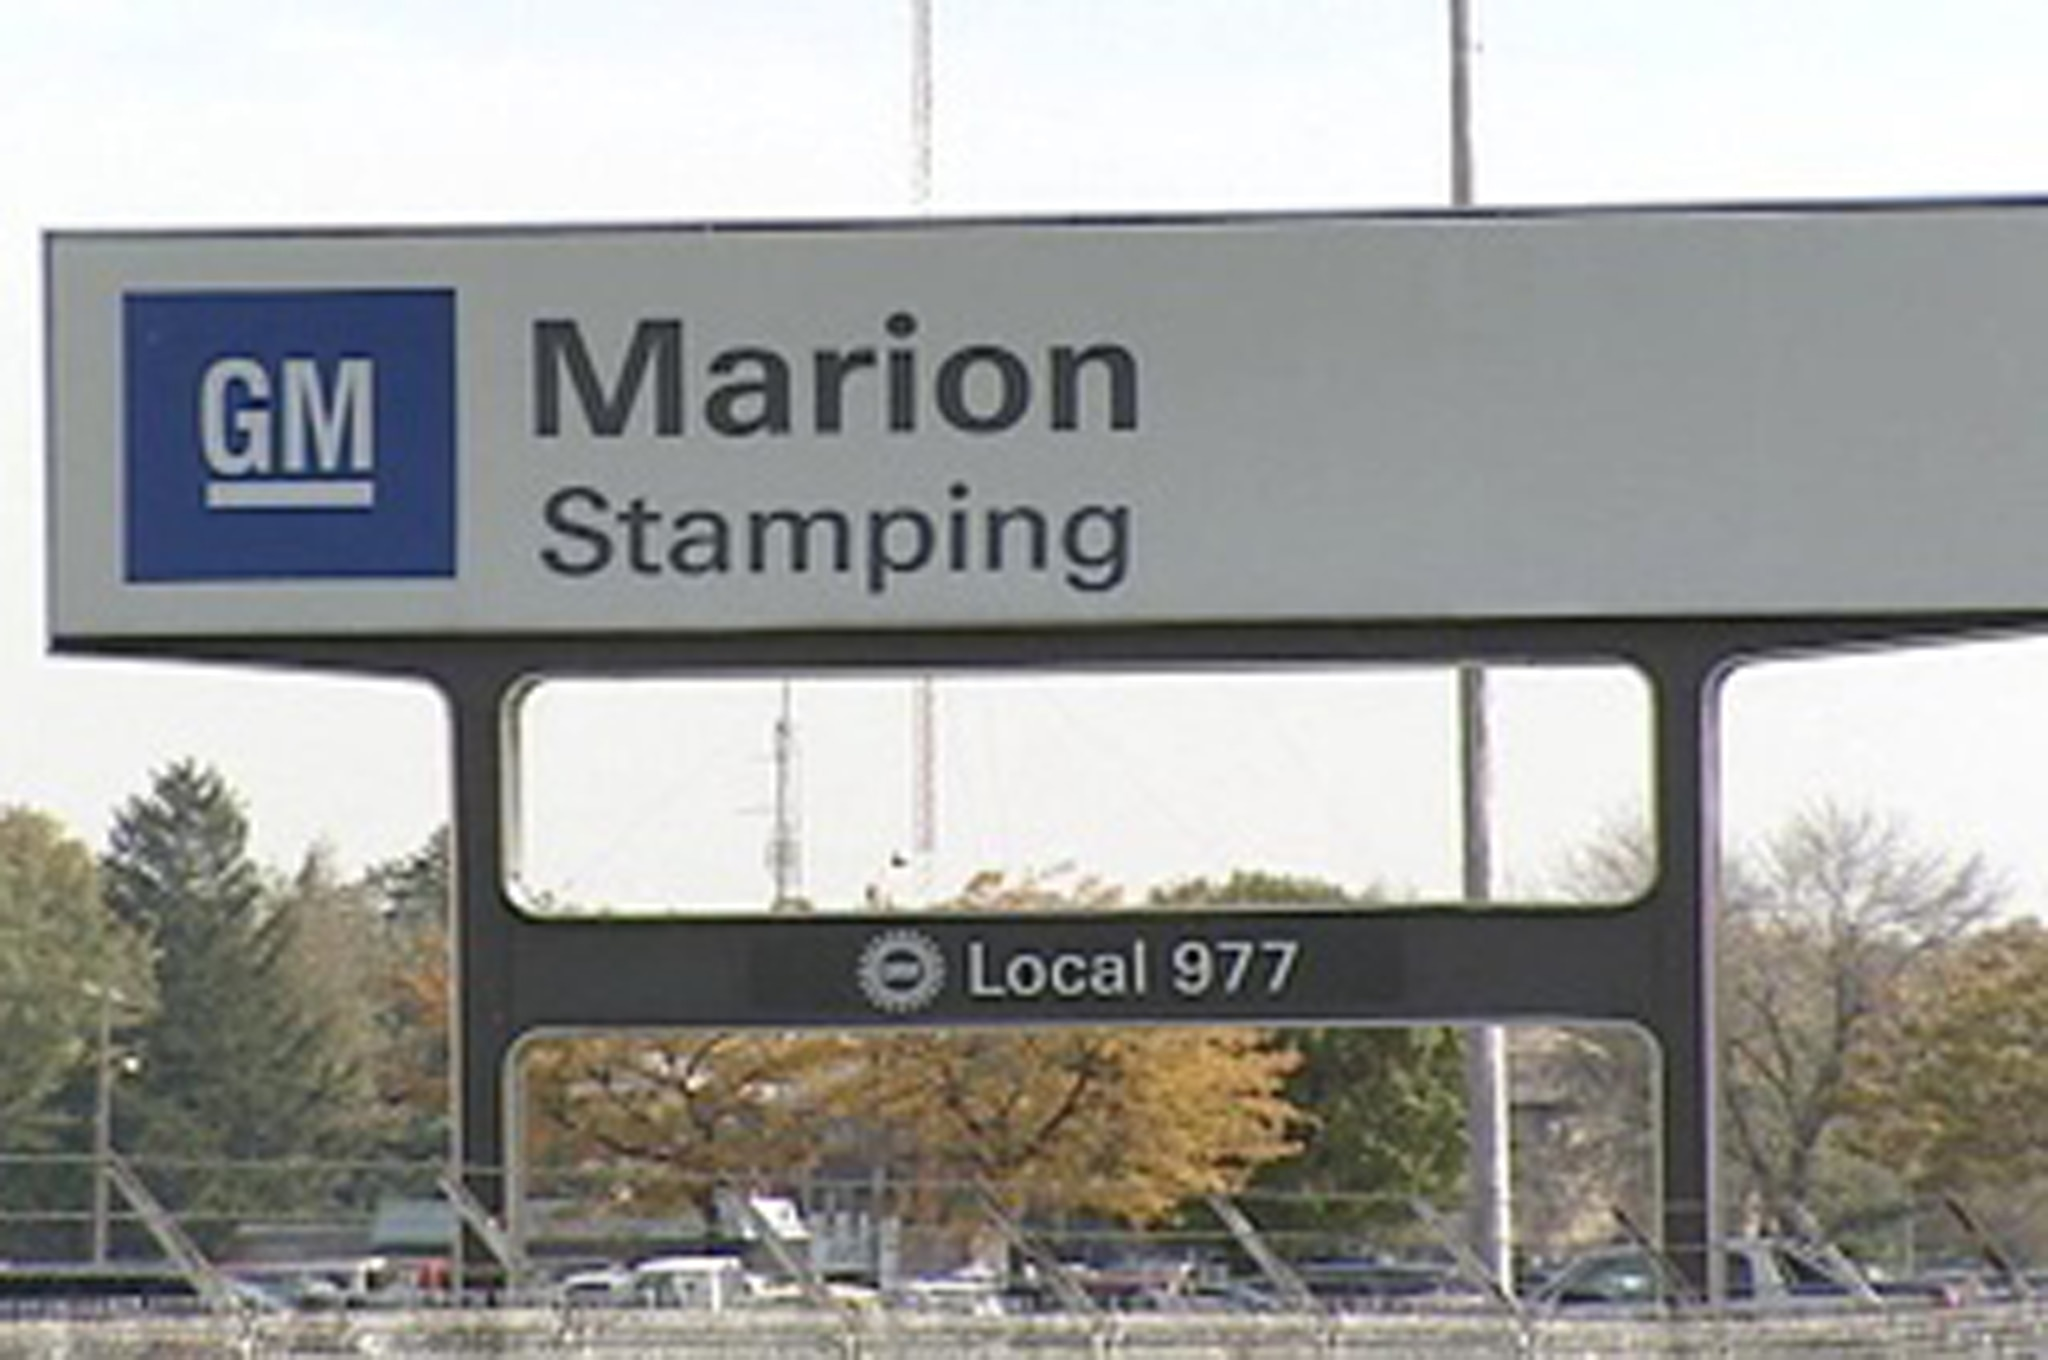 GM Marion Stamping Plant Sign